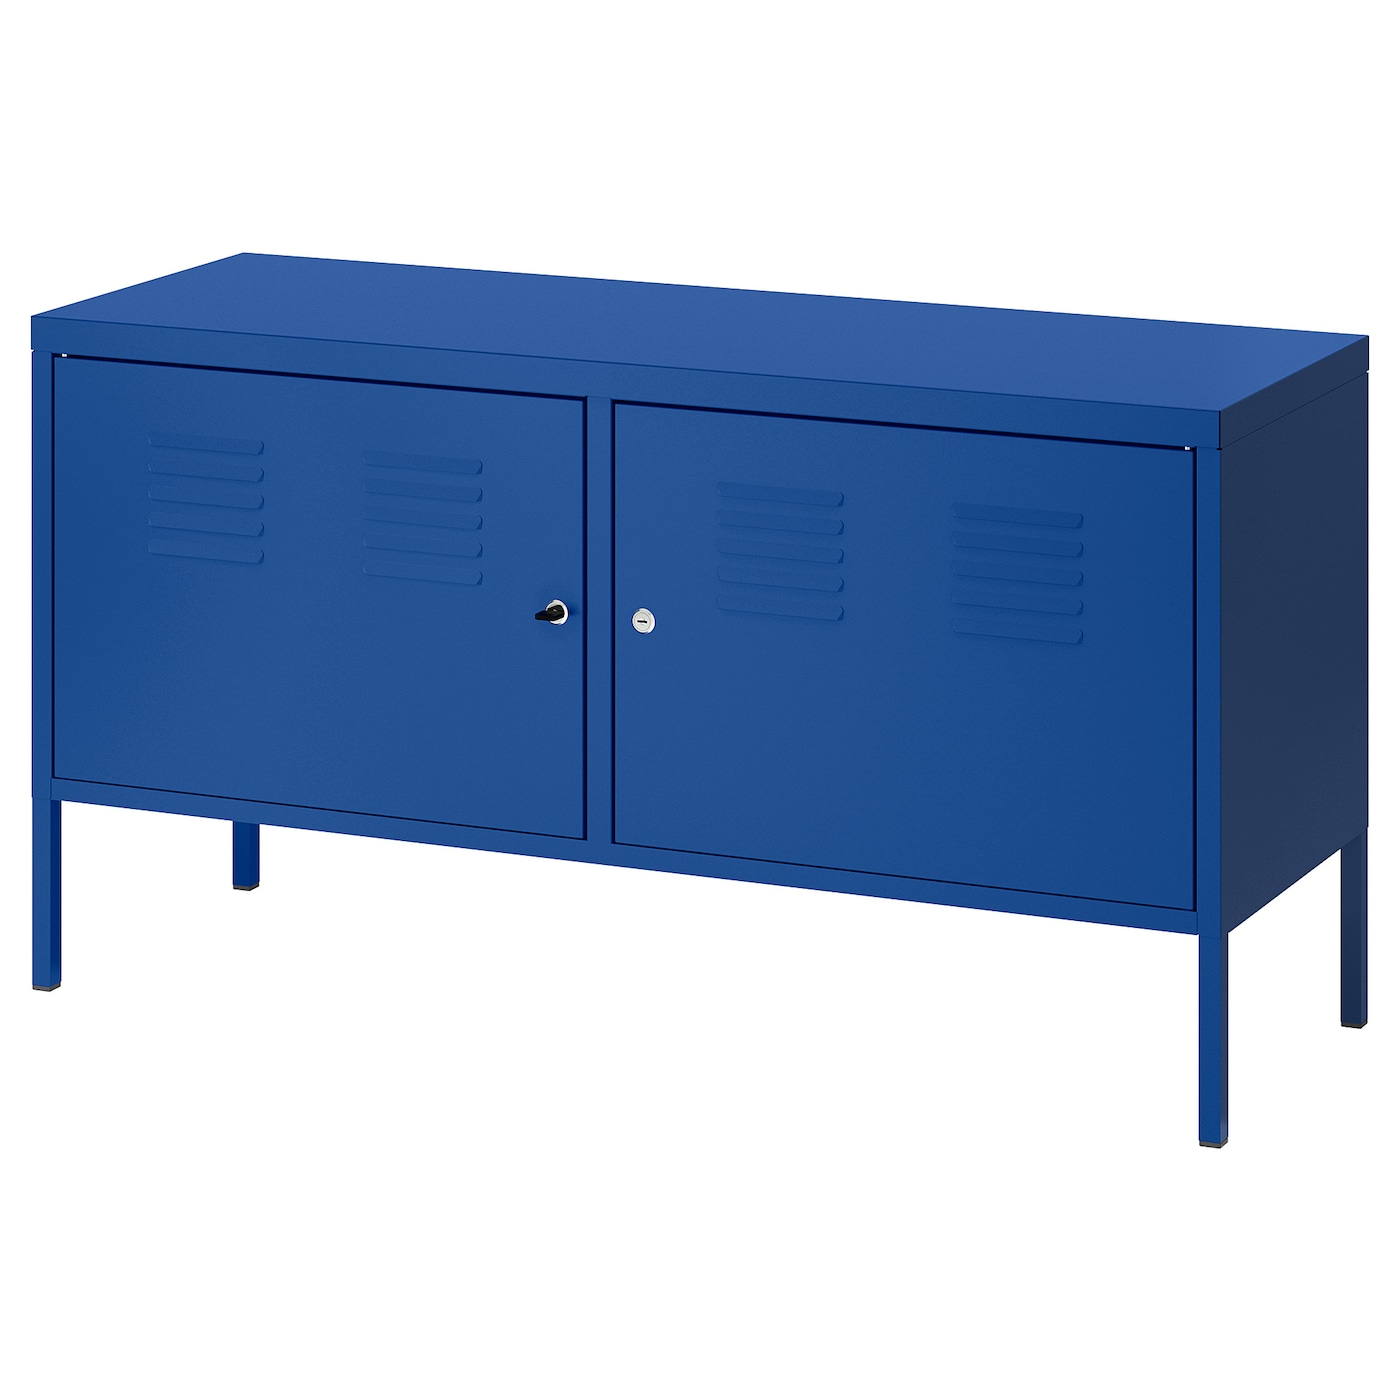 ikea ps armoire m tallique bleu 119 x 63 cm ikea. Black Bedroom Furniture Sets. Home Design Ideas